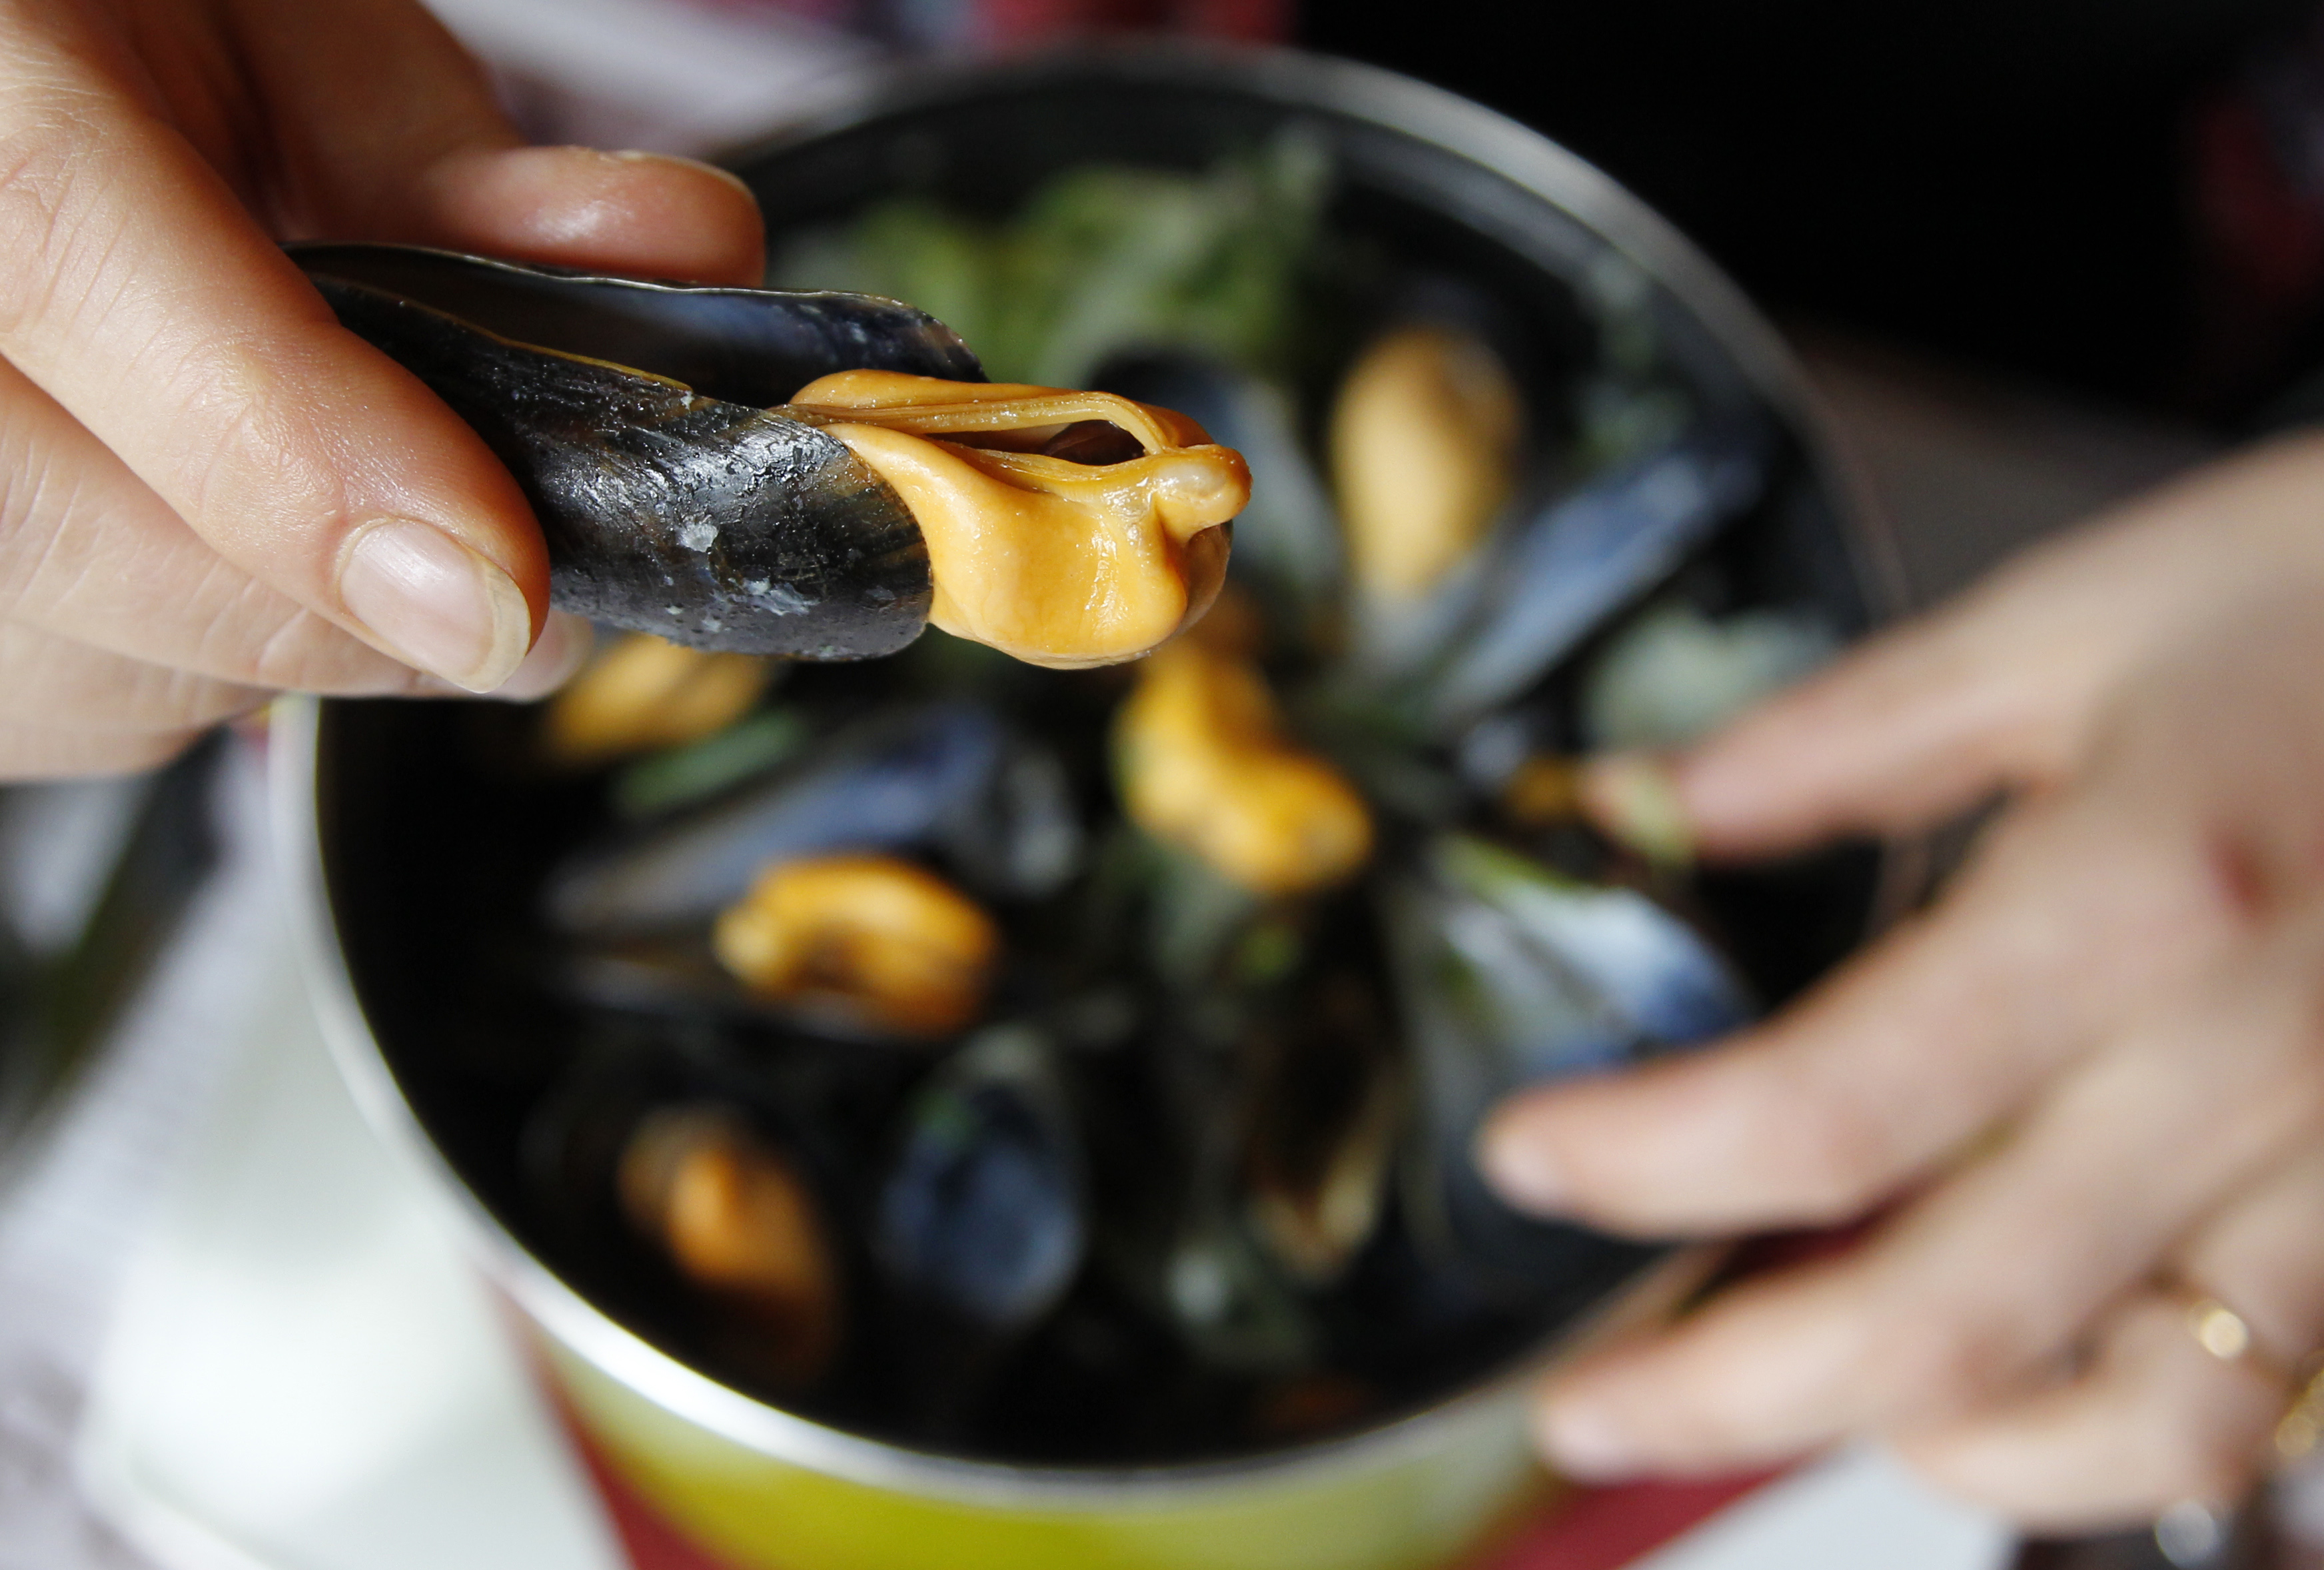 To understand climate change, look at it from a mussel's perspective